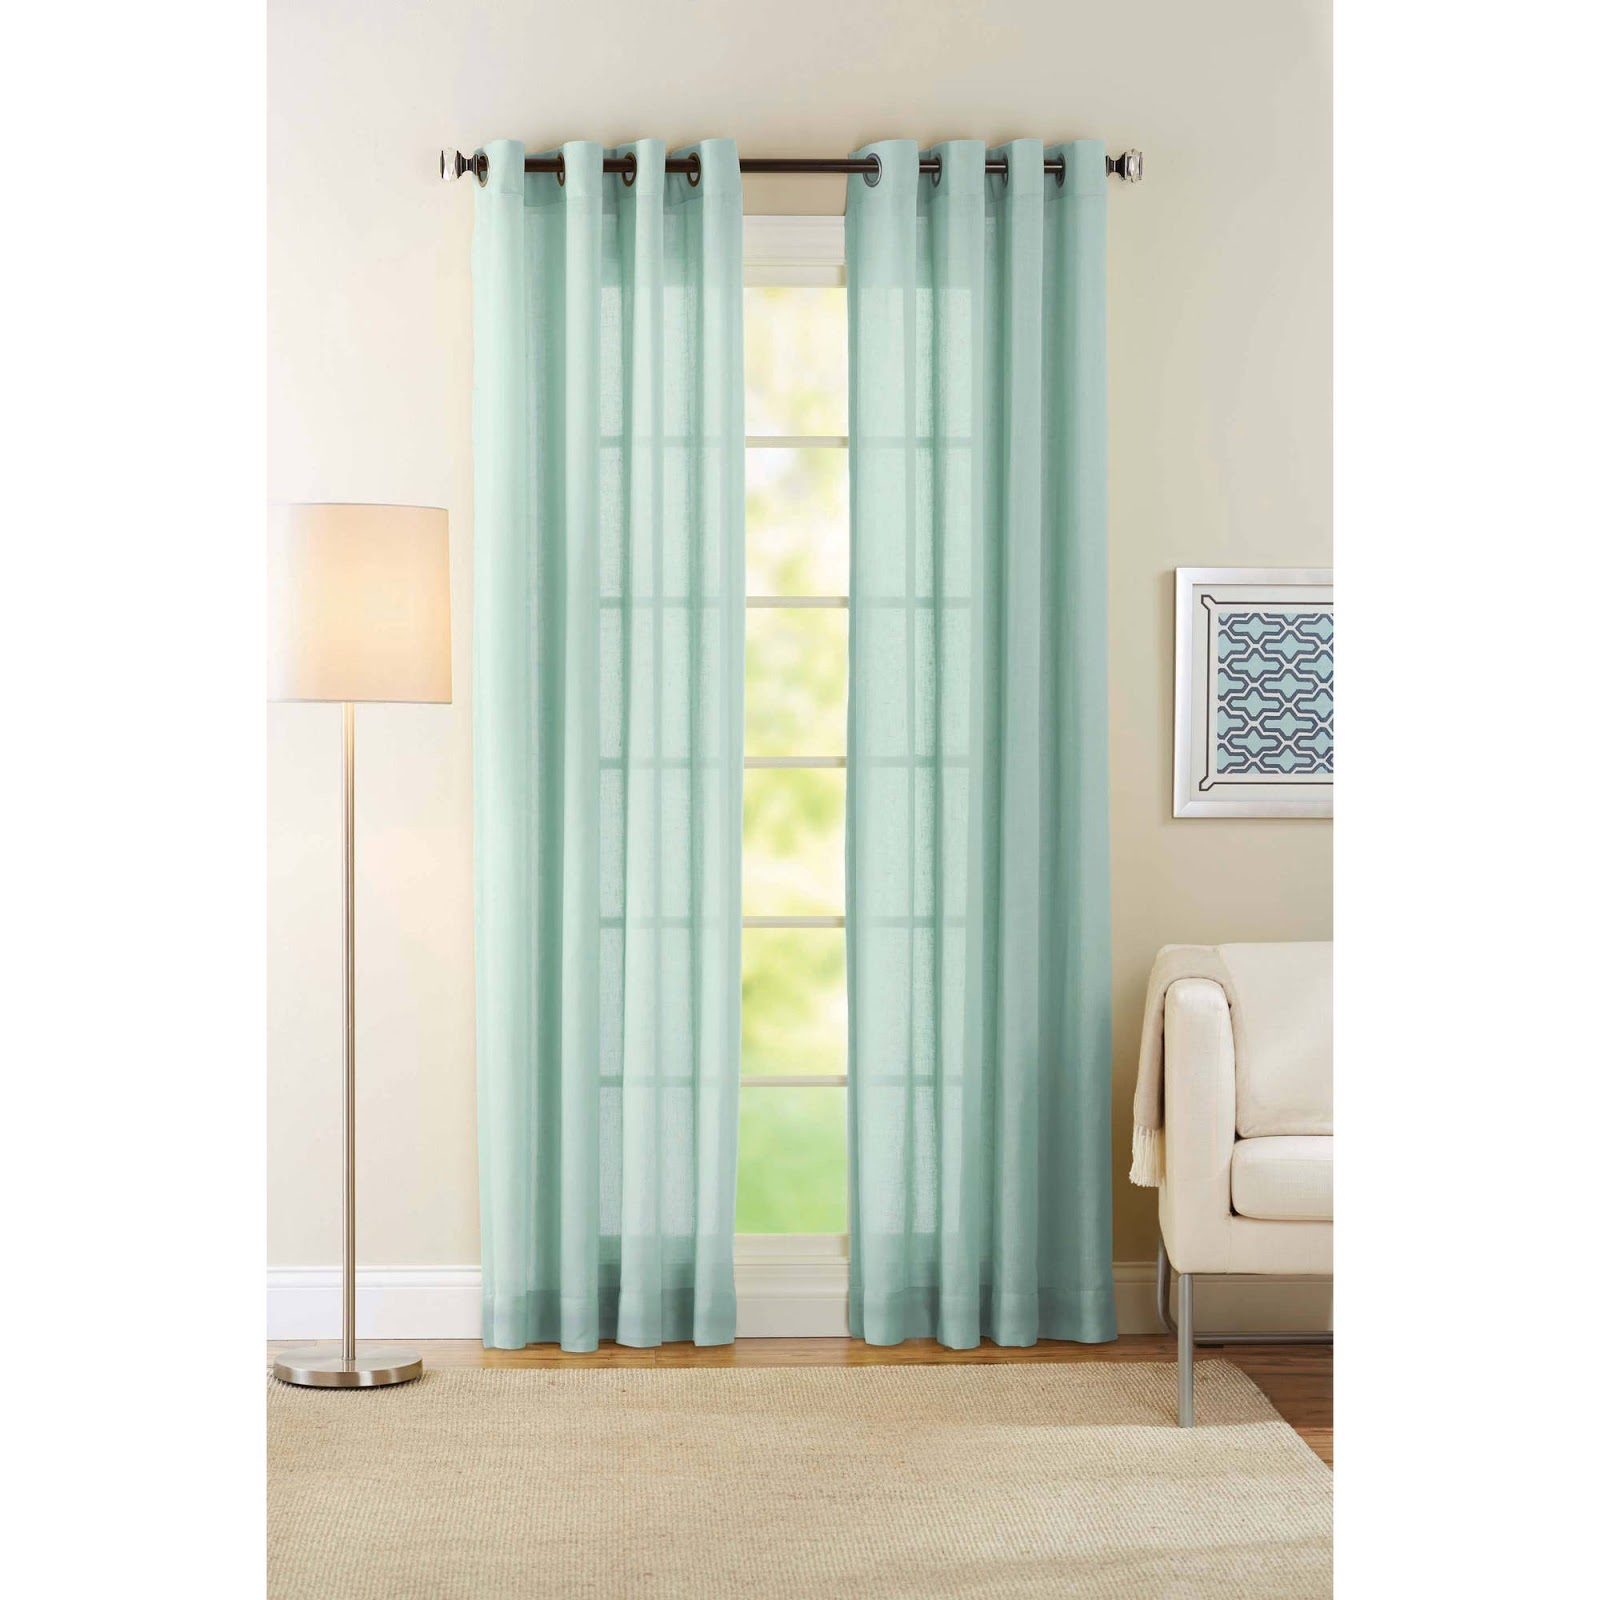 Design Kitchen Curtains Of Curtain For Living Rooms Window